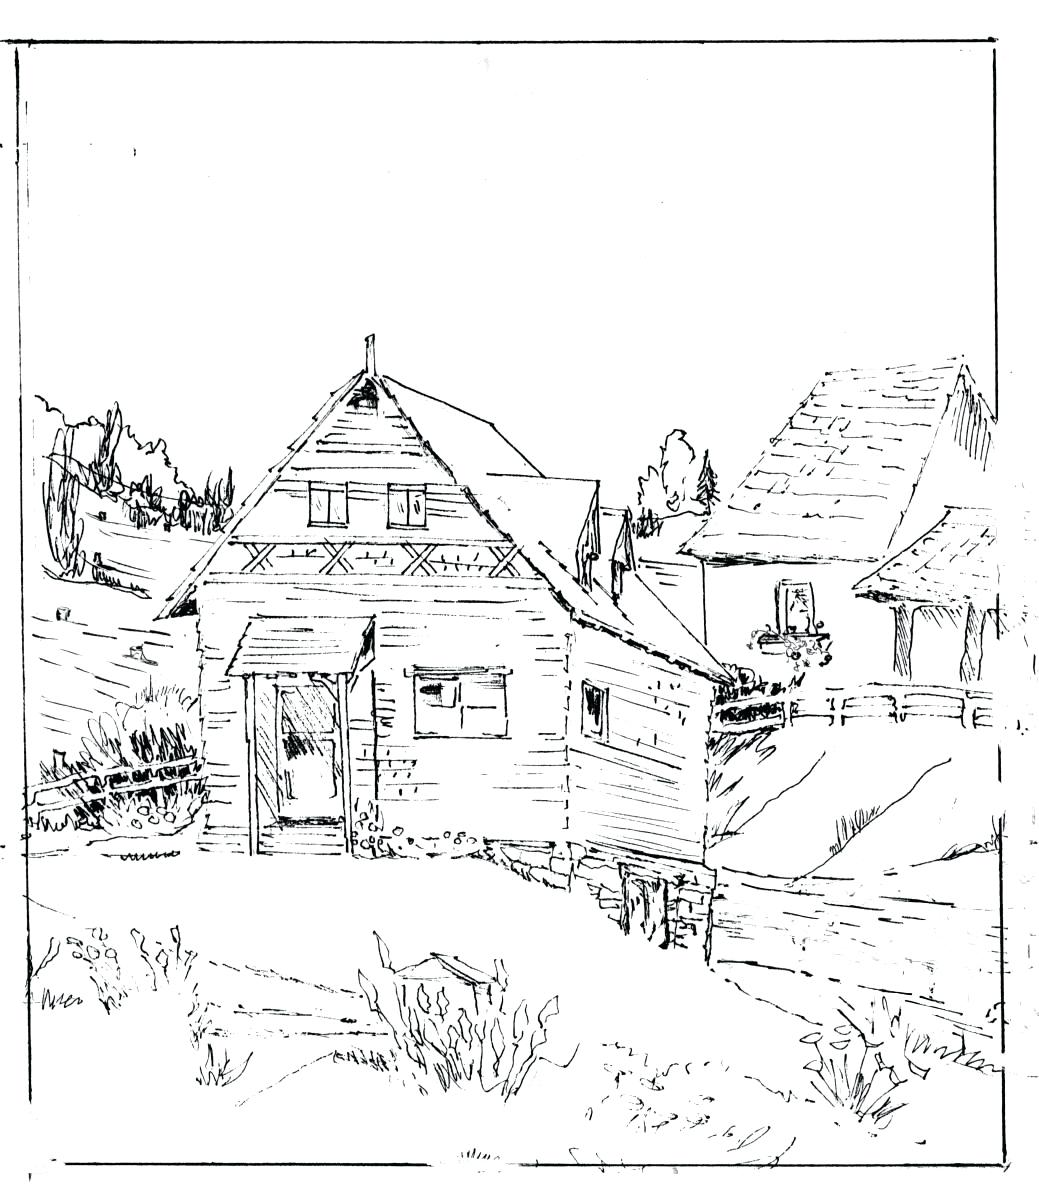 log cabin drawing at getdrawings com free for personal use log